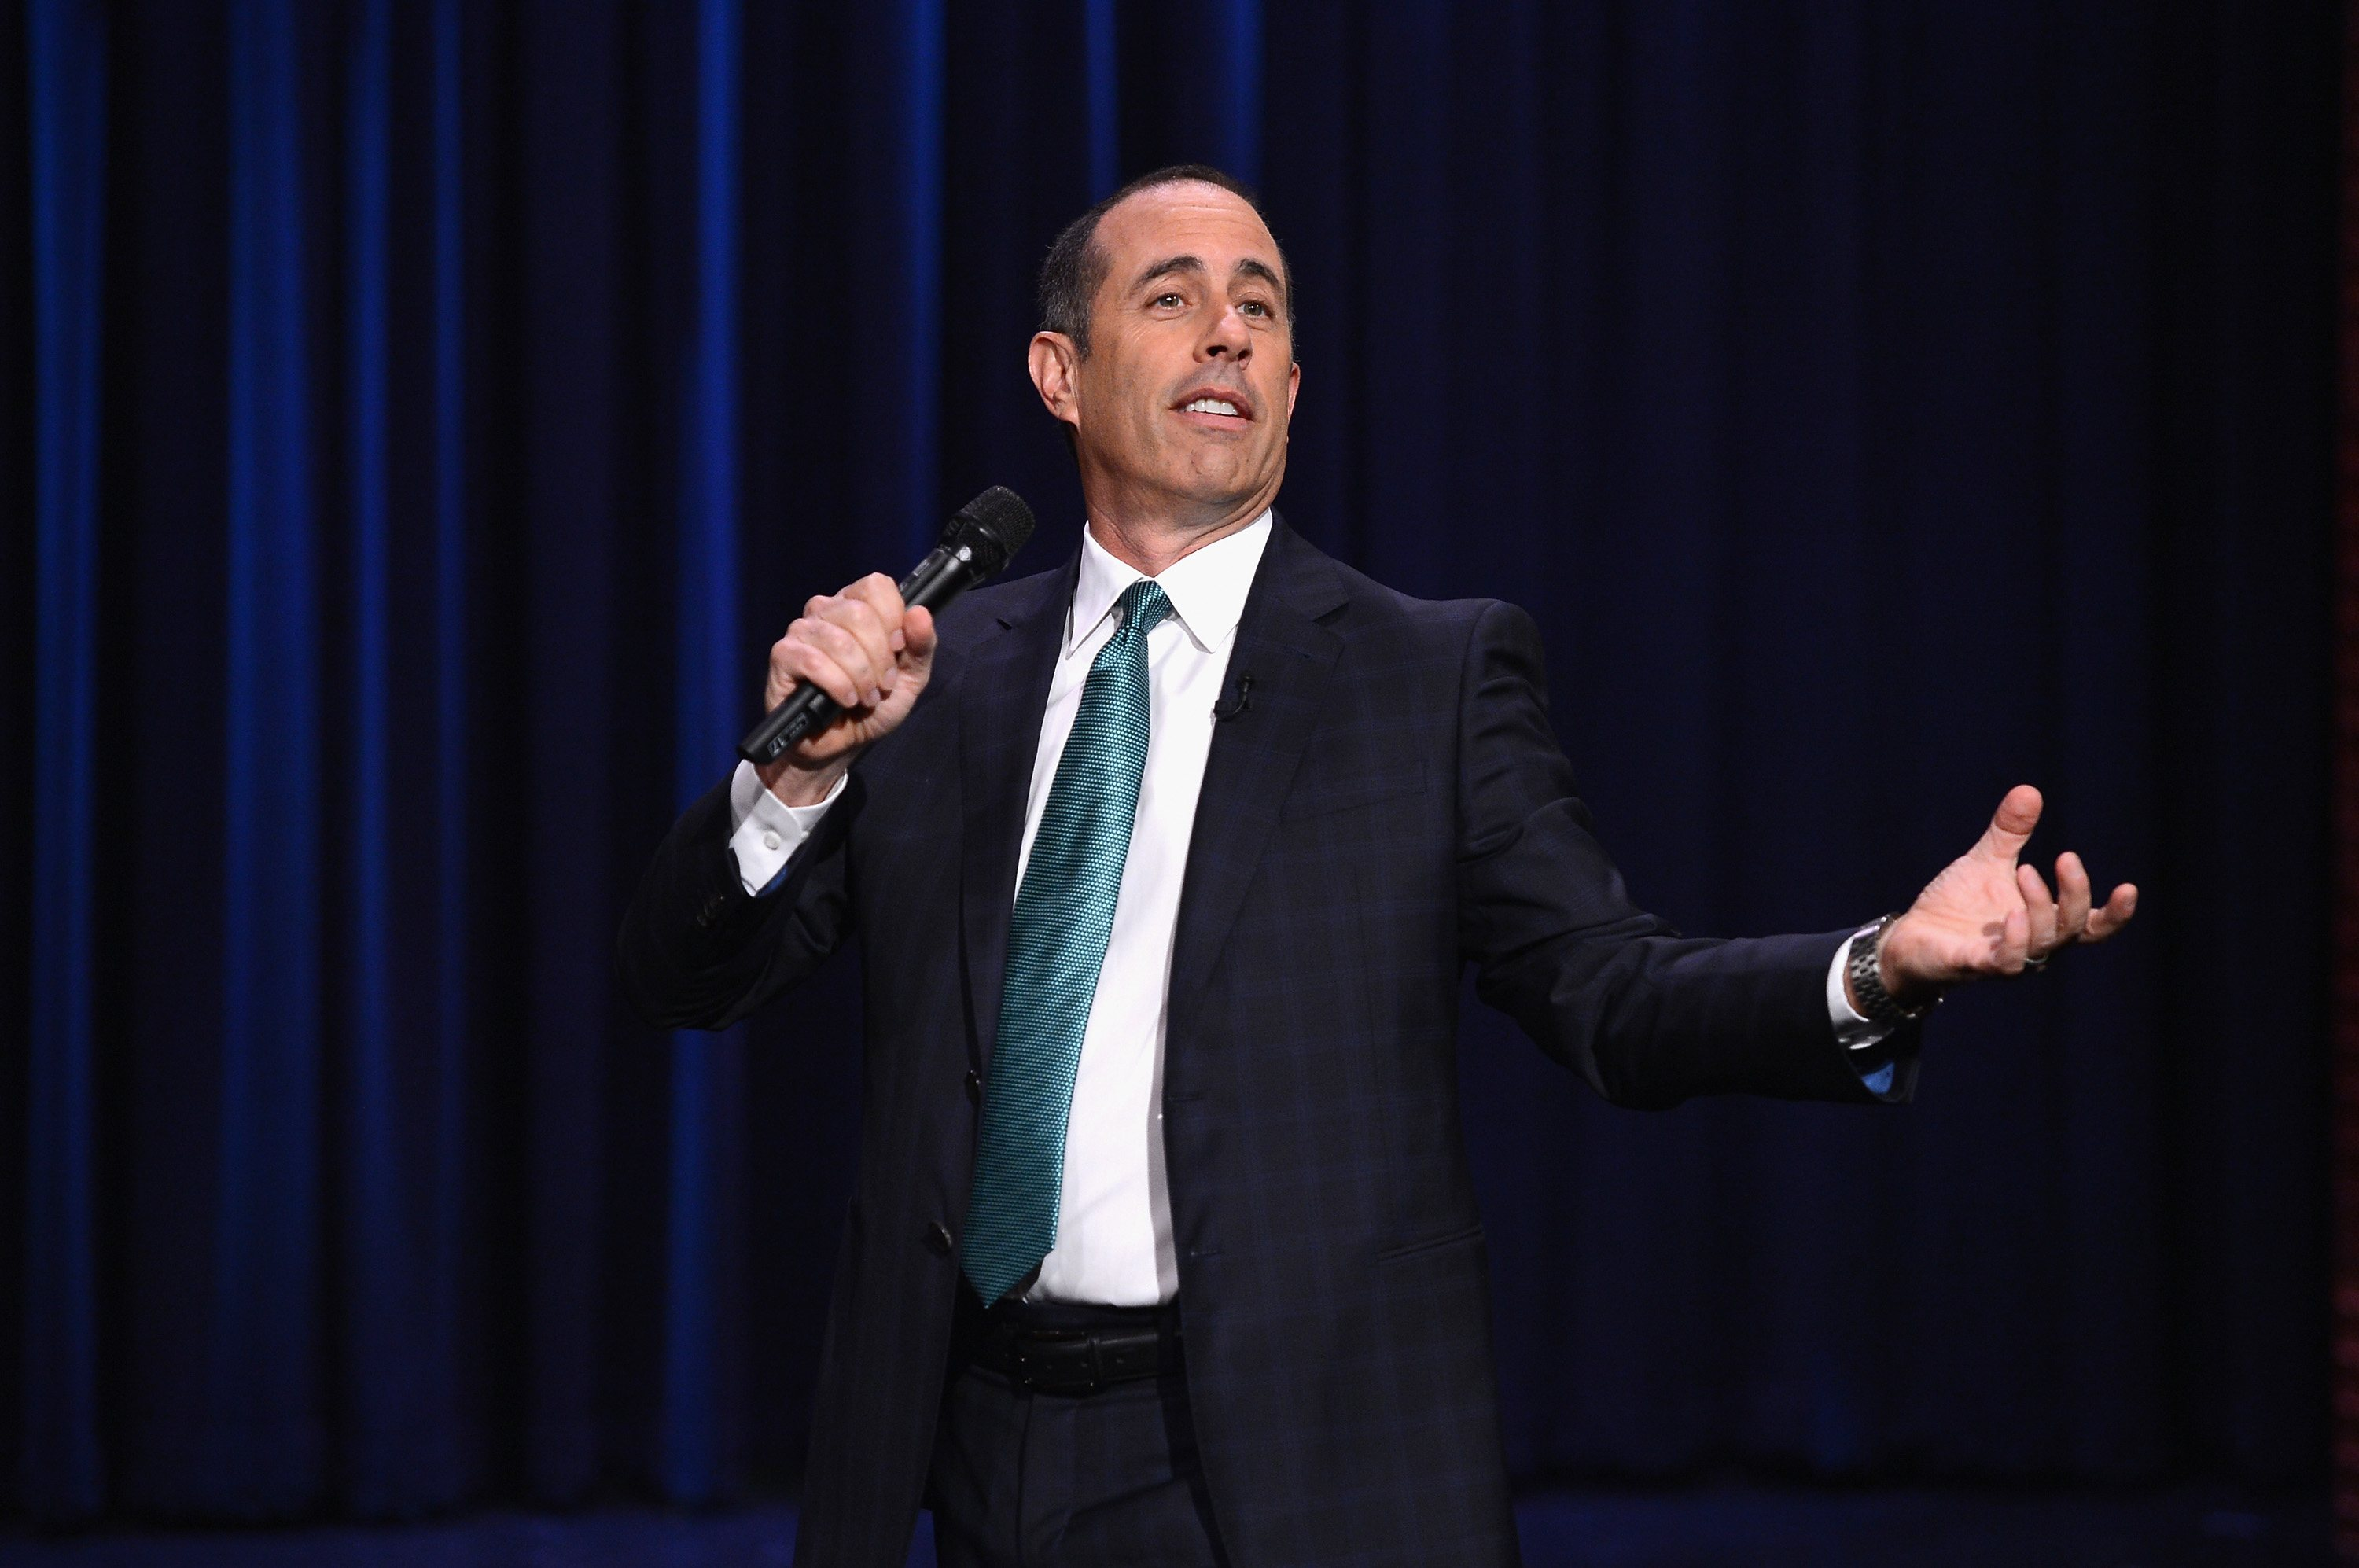 Jerry Seinfeld's New Netflix Special Sounds Like Every Seinfeld Fan's Dream